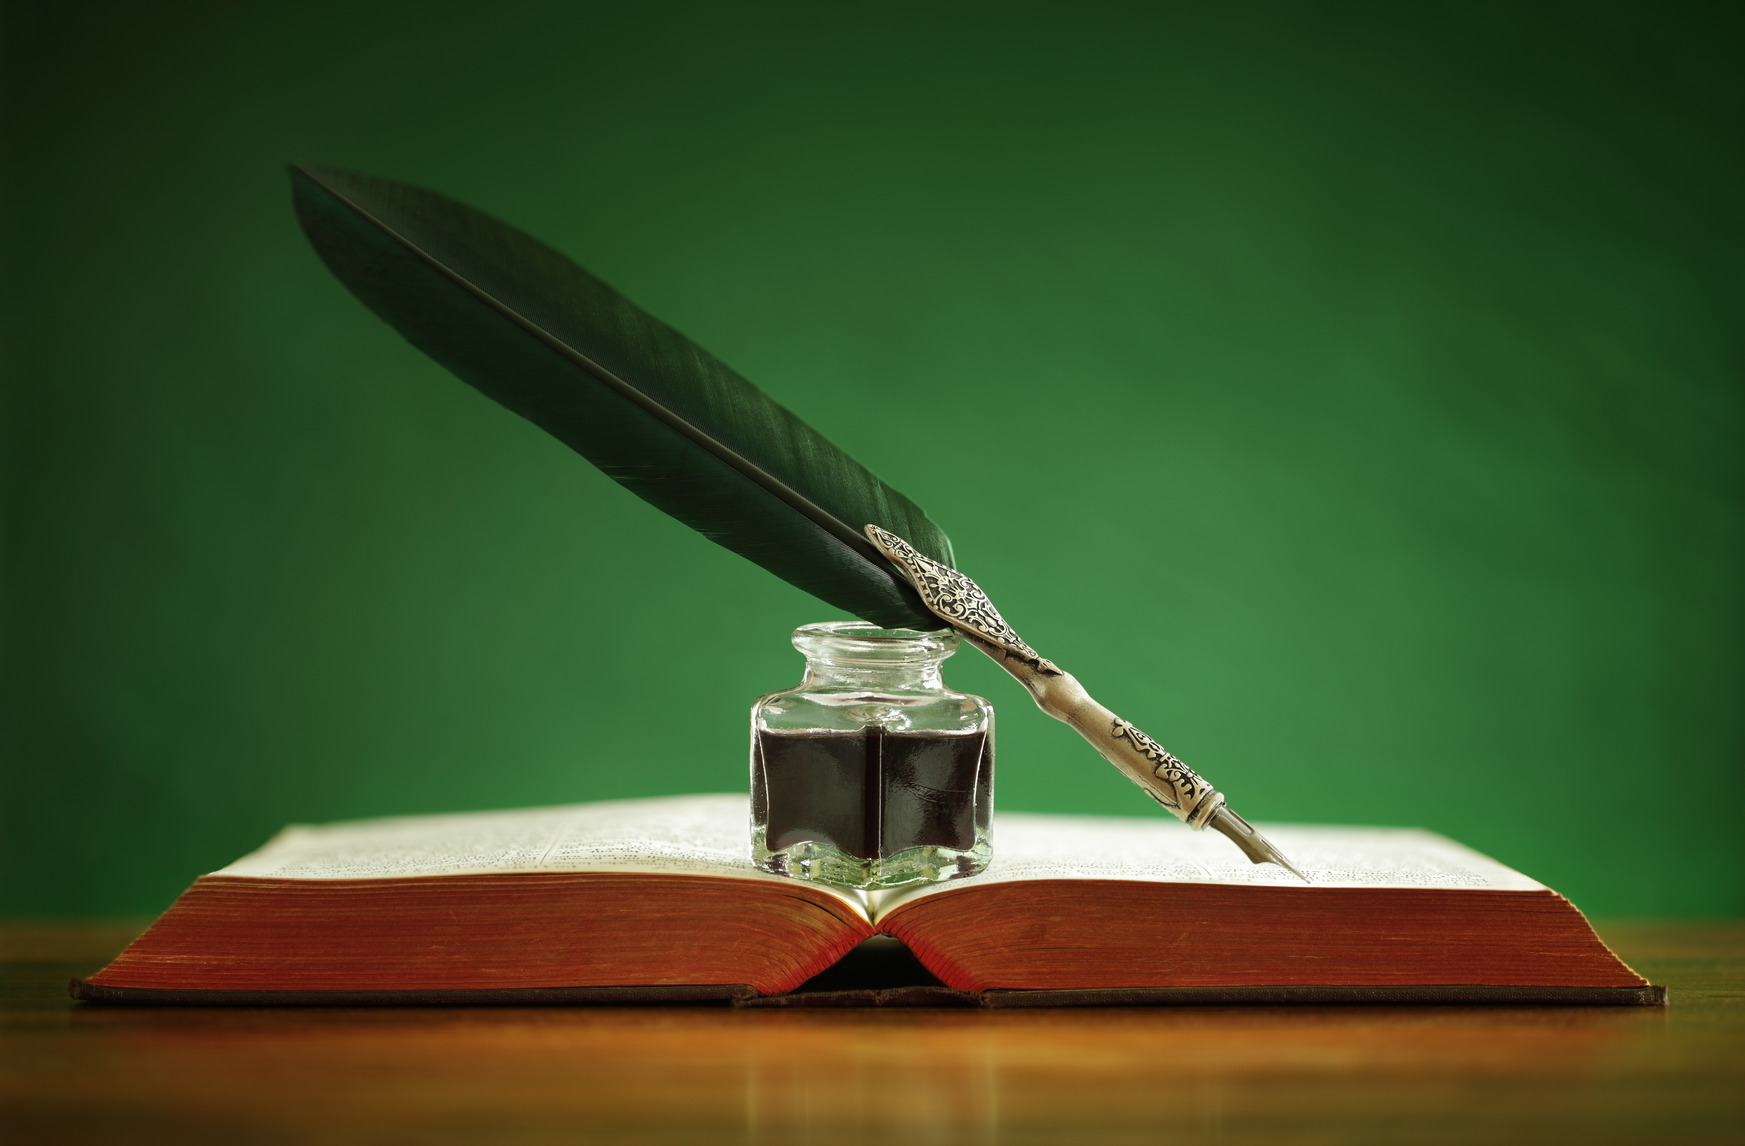 quill-pen-and-inkwell-on-old-book-m